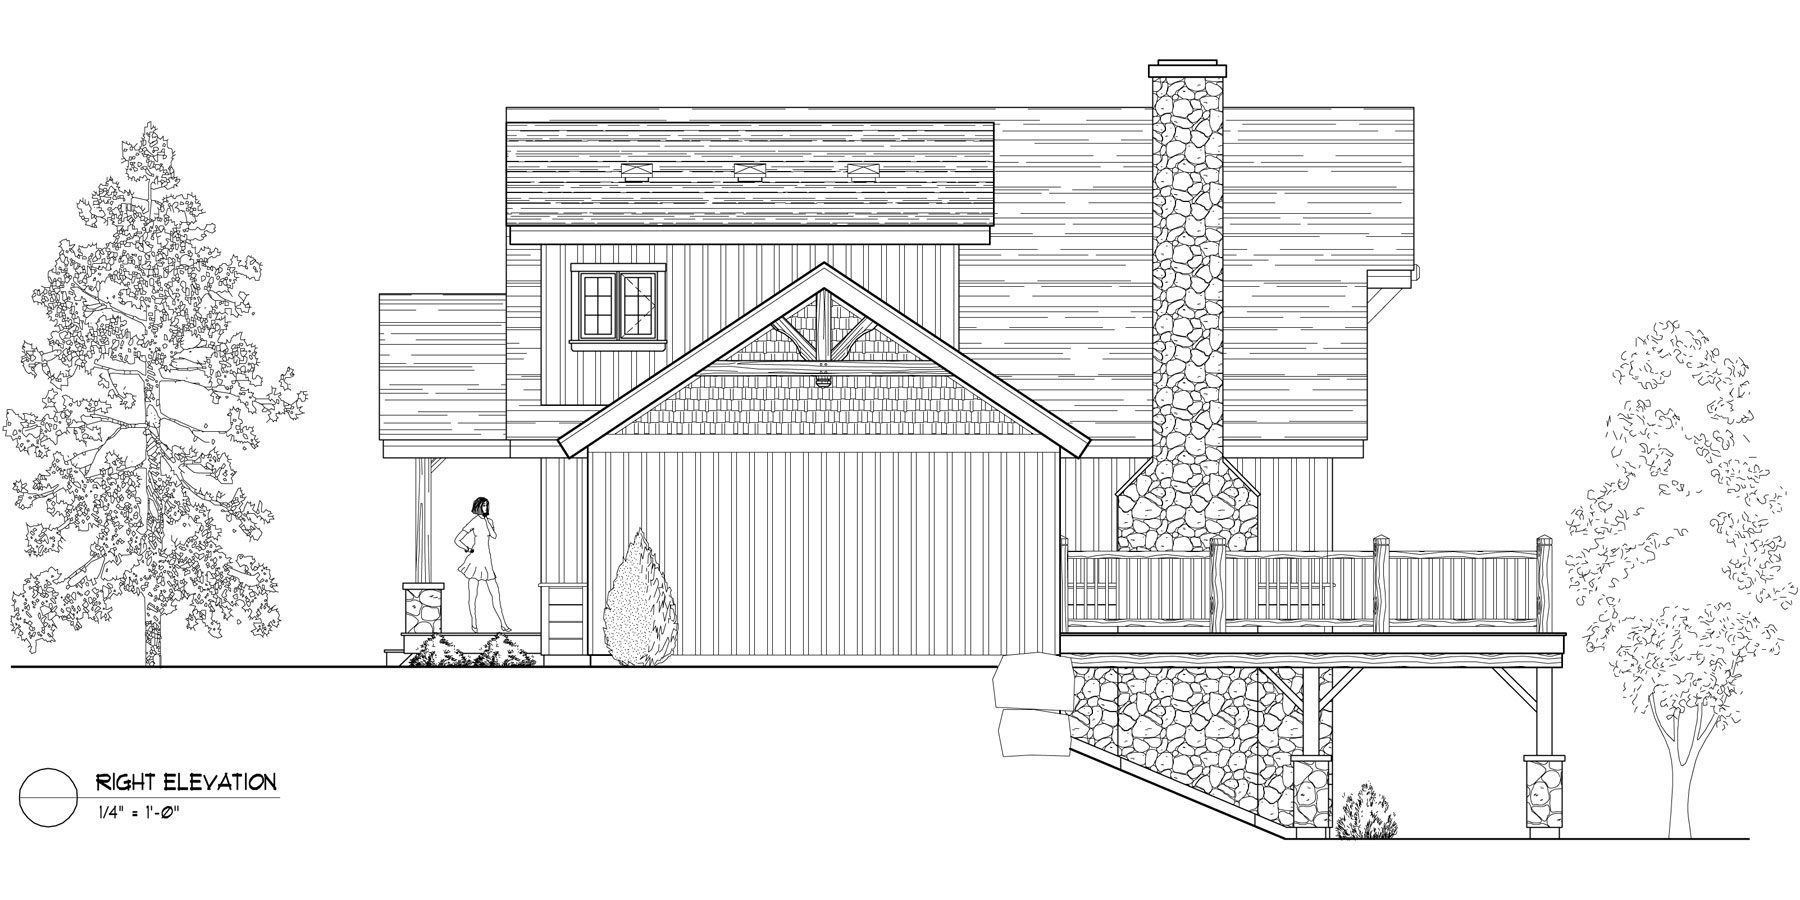 Normerica Timber Frames, House Plan, The Carleton 3115, Right Elevation